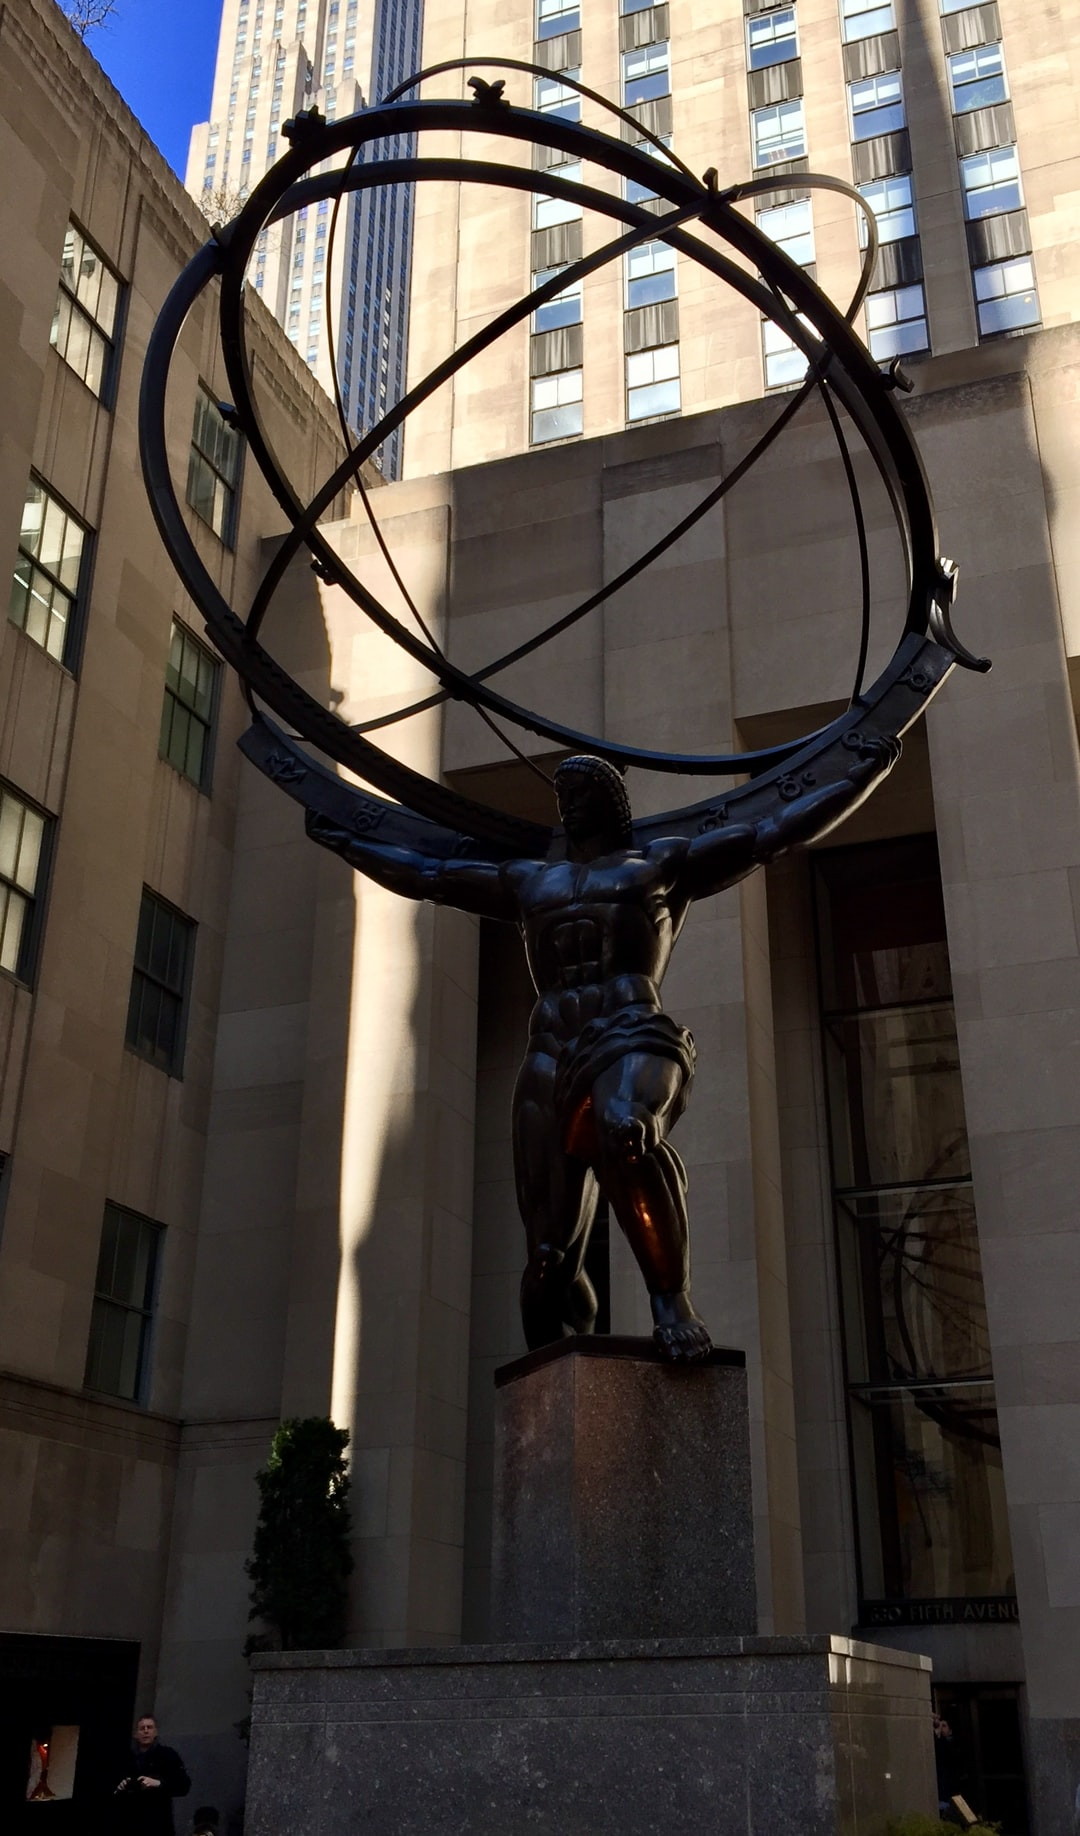 The Lottery at 30 Rock: June 11, 2019